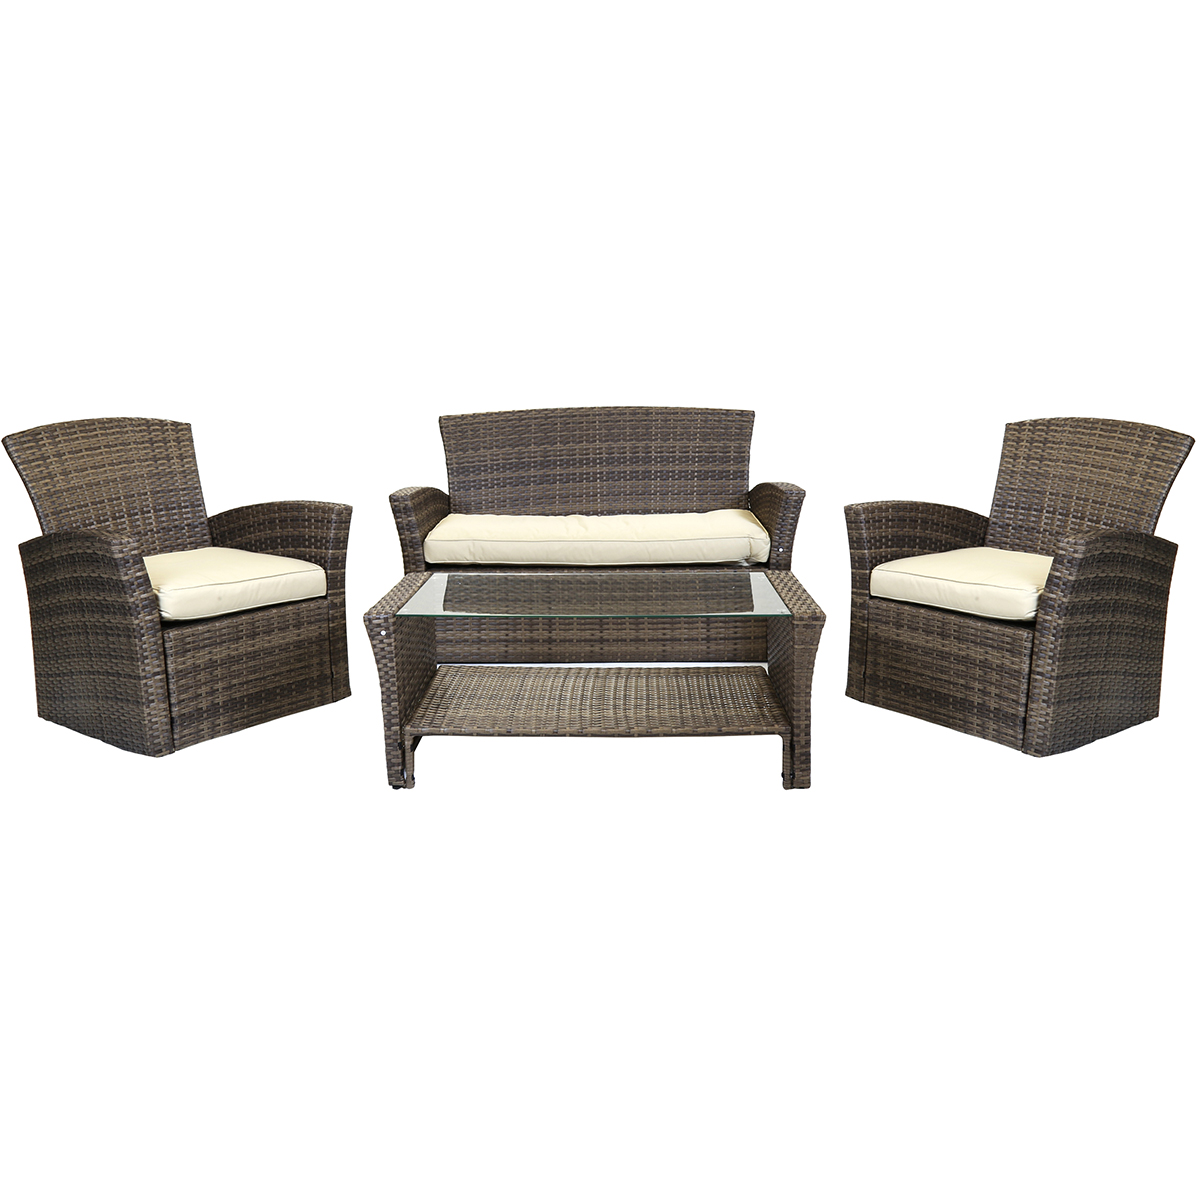 Charles Bentley Deluxe Modern 4 Piece Rattan Garden Furniture Set ...